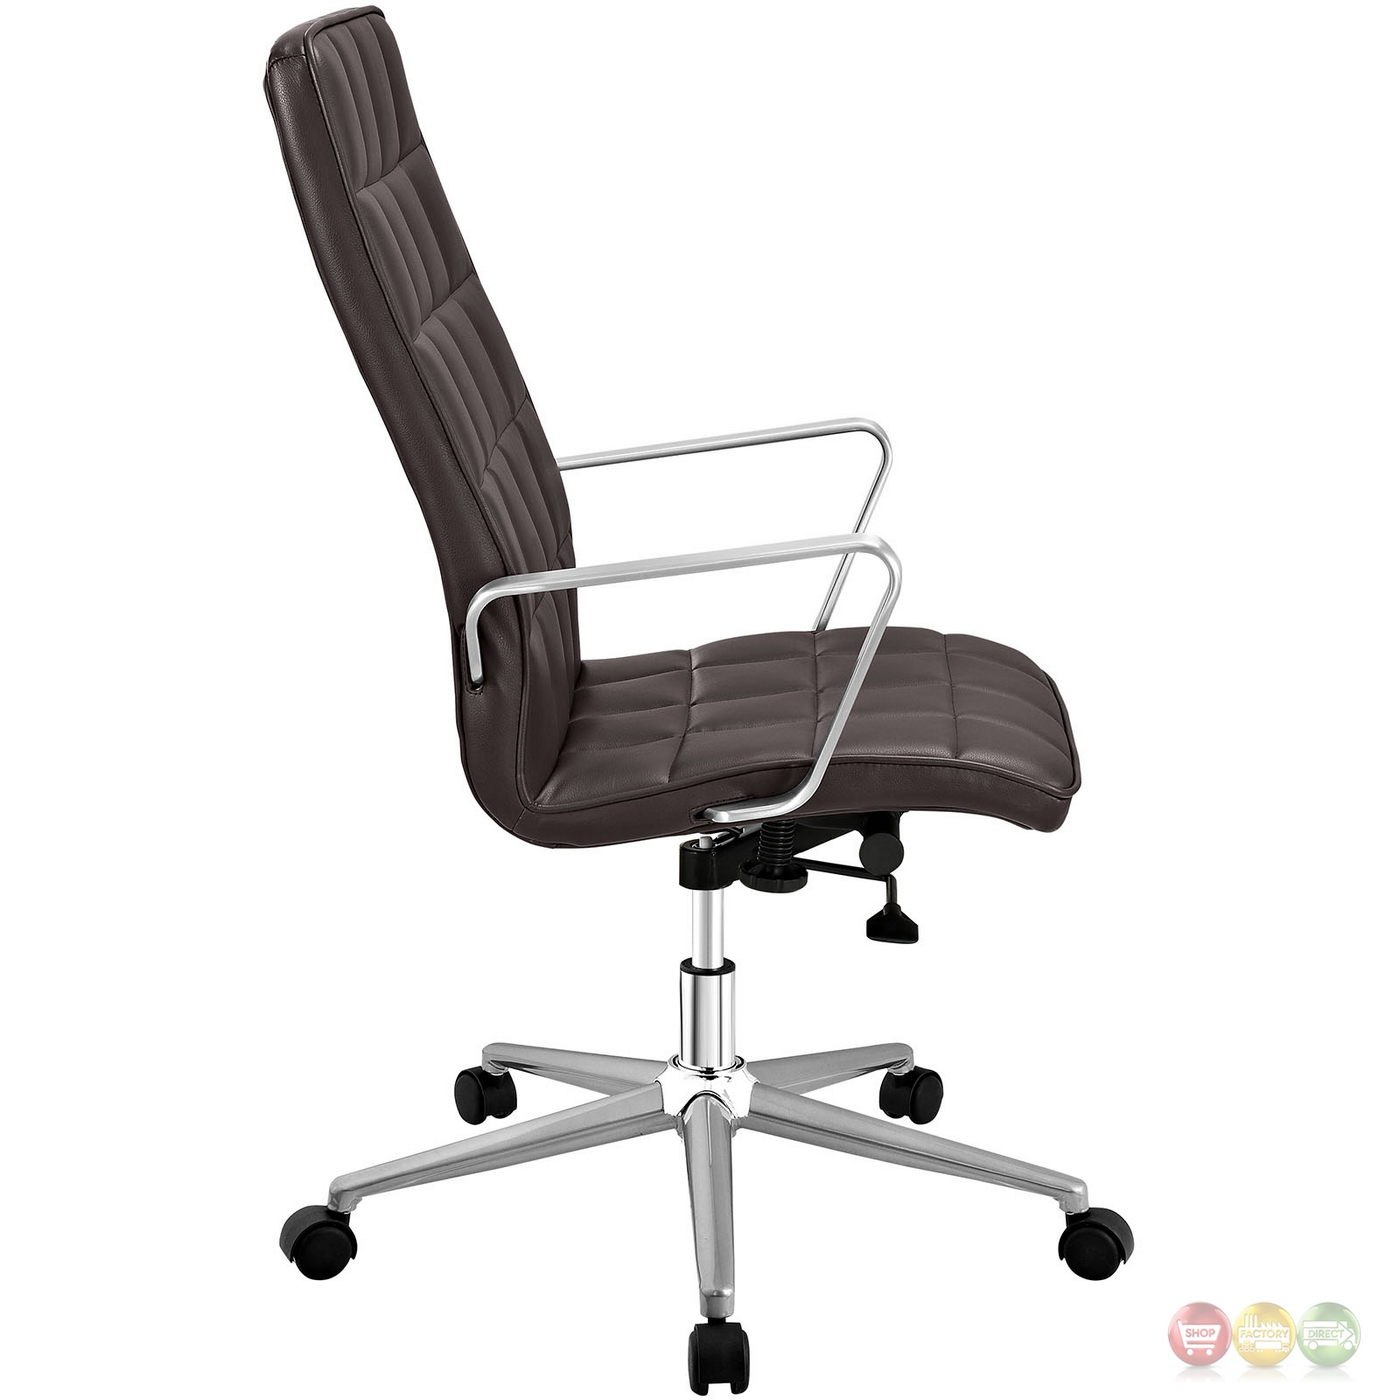 High back vinyl upholstered office chair with tilt and swivel brown